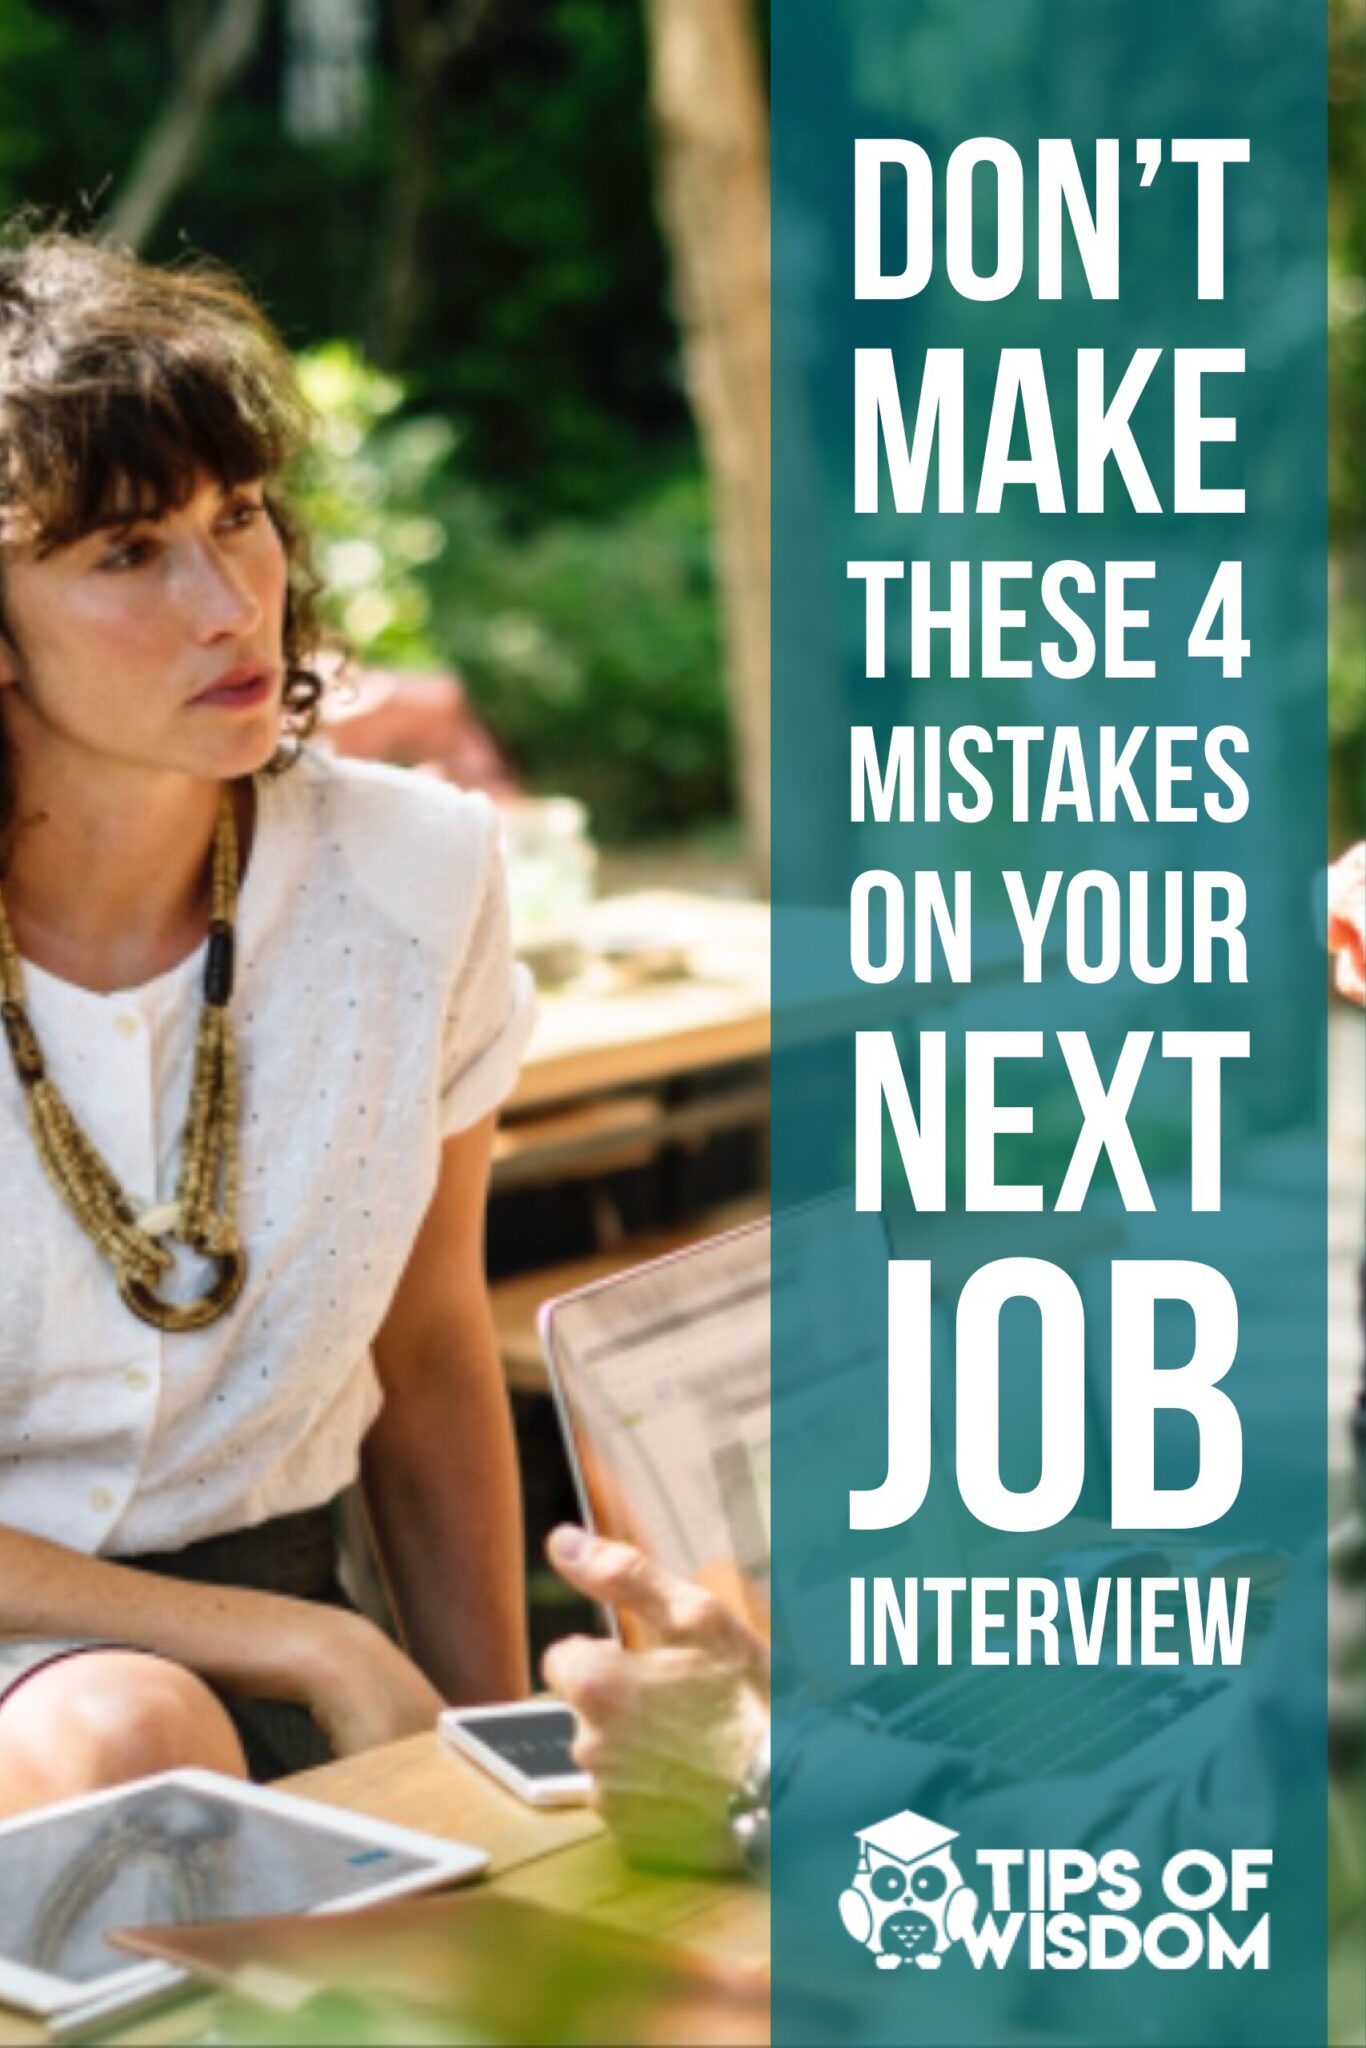 Don't Make These 4 Mistakes On Your Next Job Interview